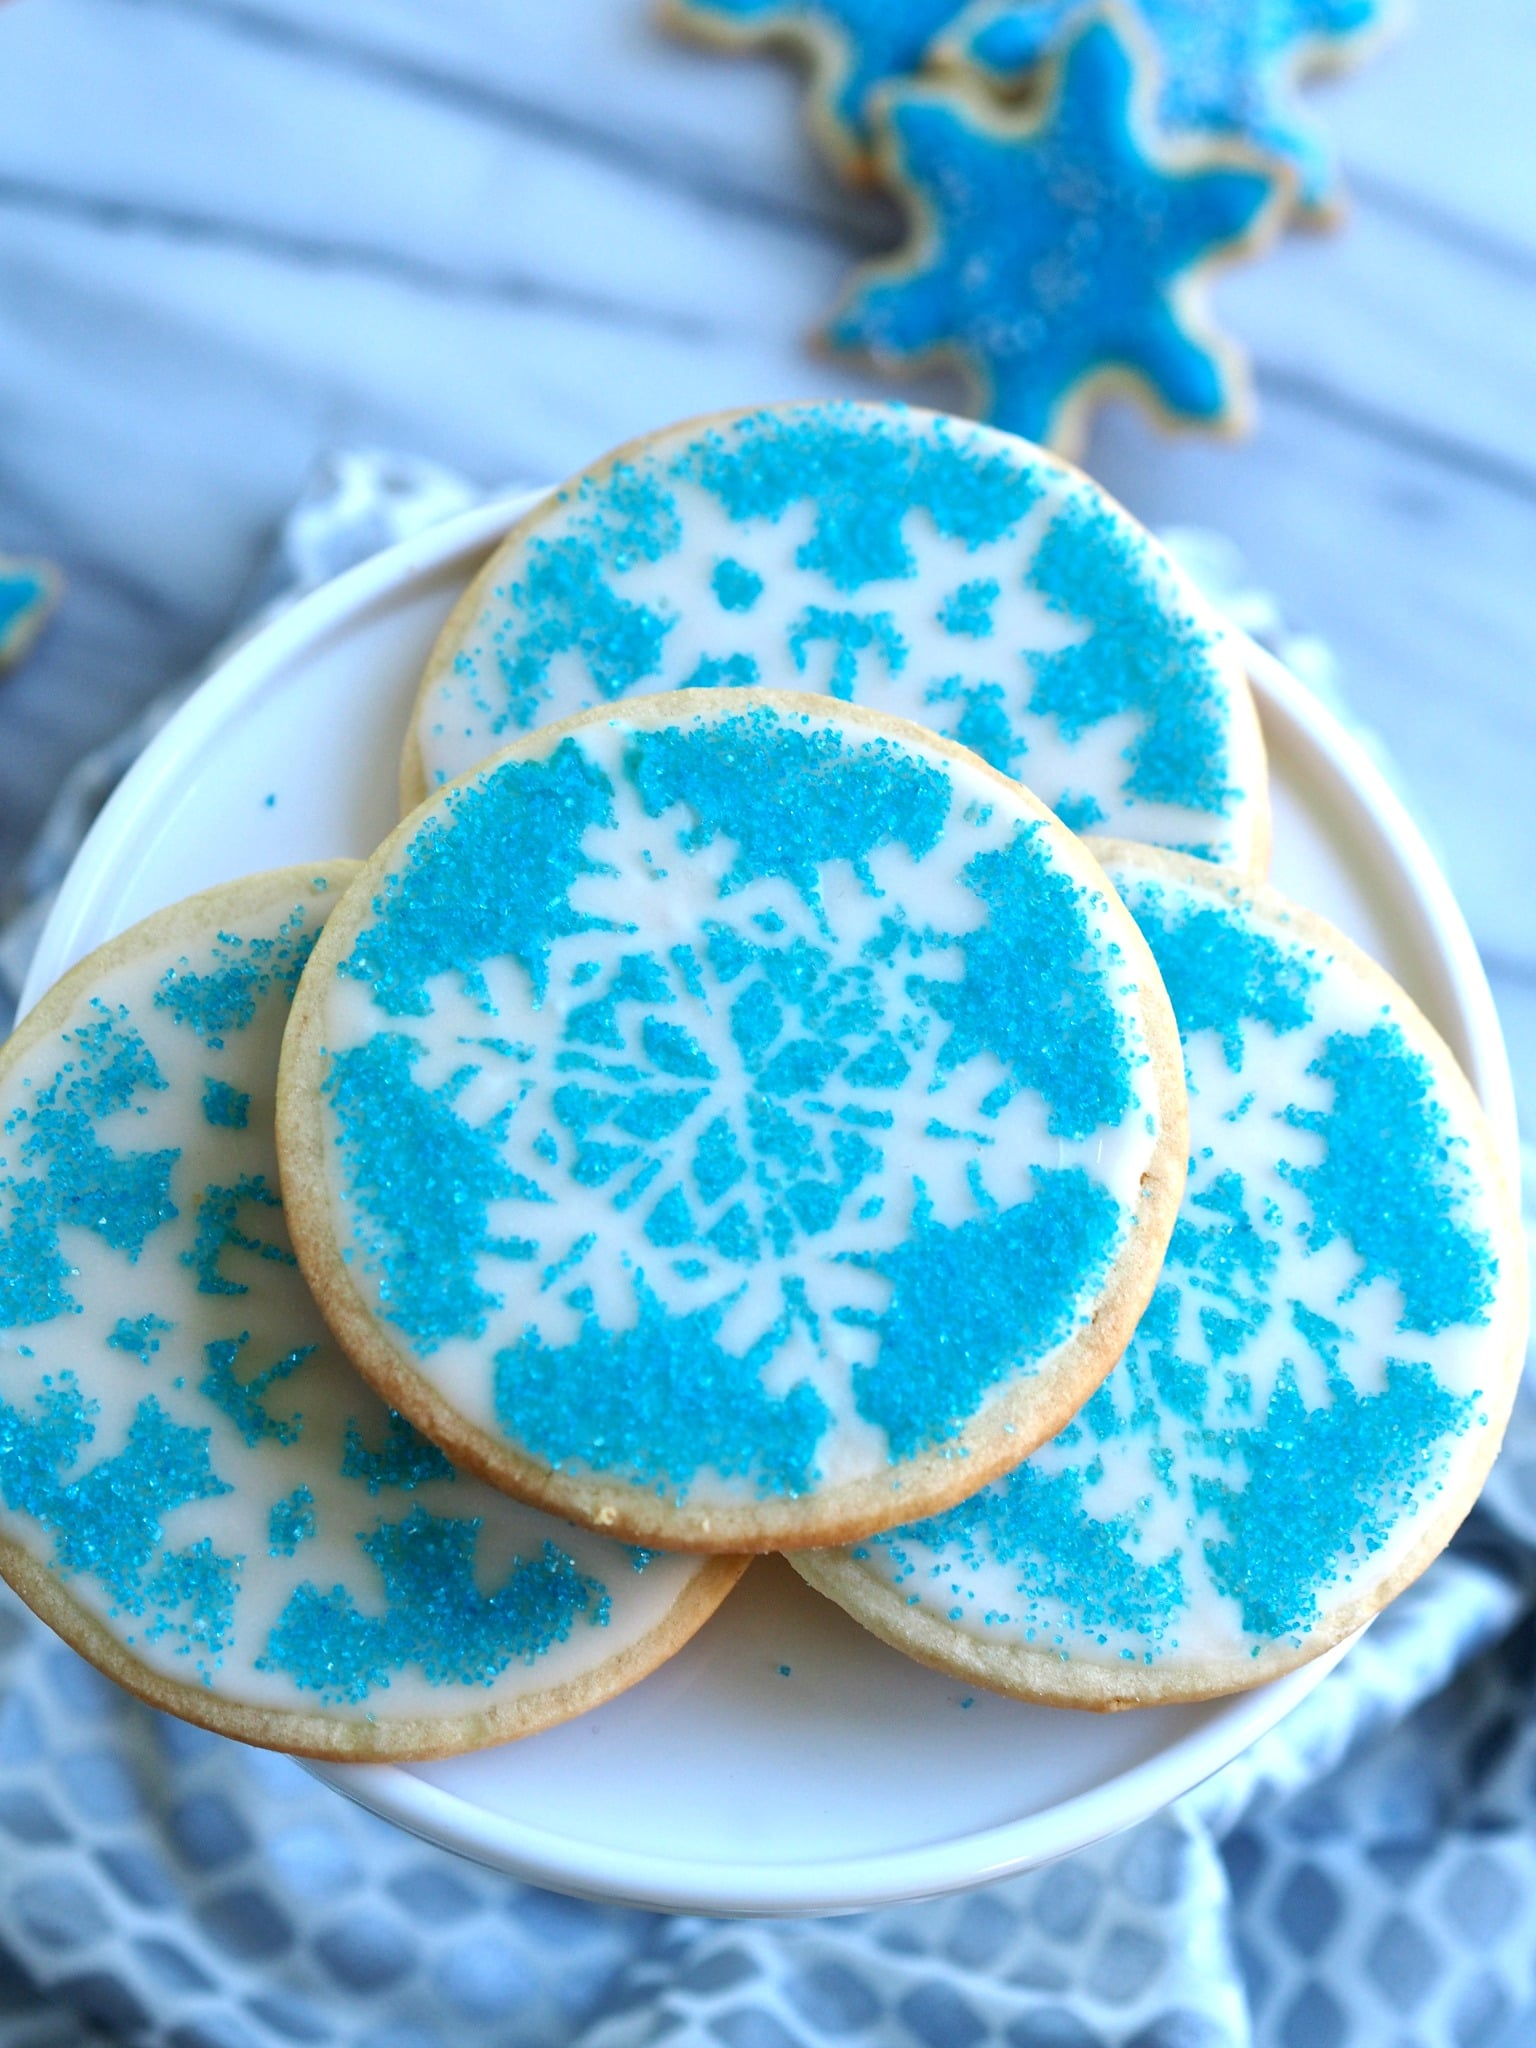 Snowflake Cookies - Using stencil ornaments, any decorated cookie can be turned into a work of art. simplysated